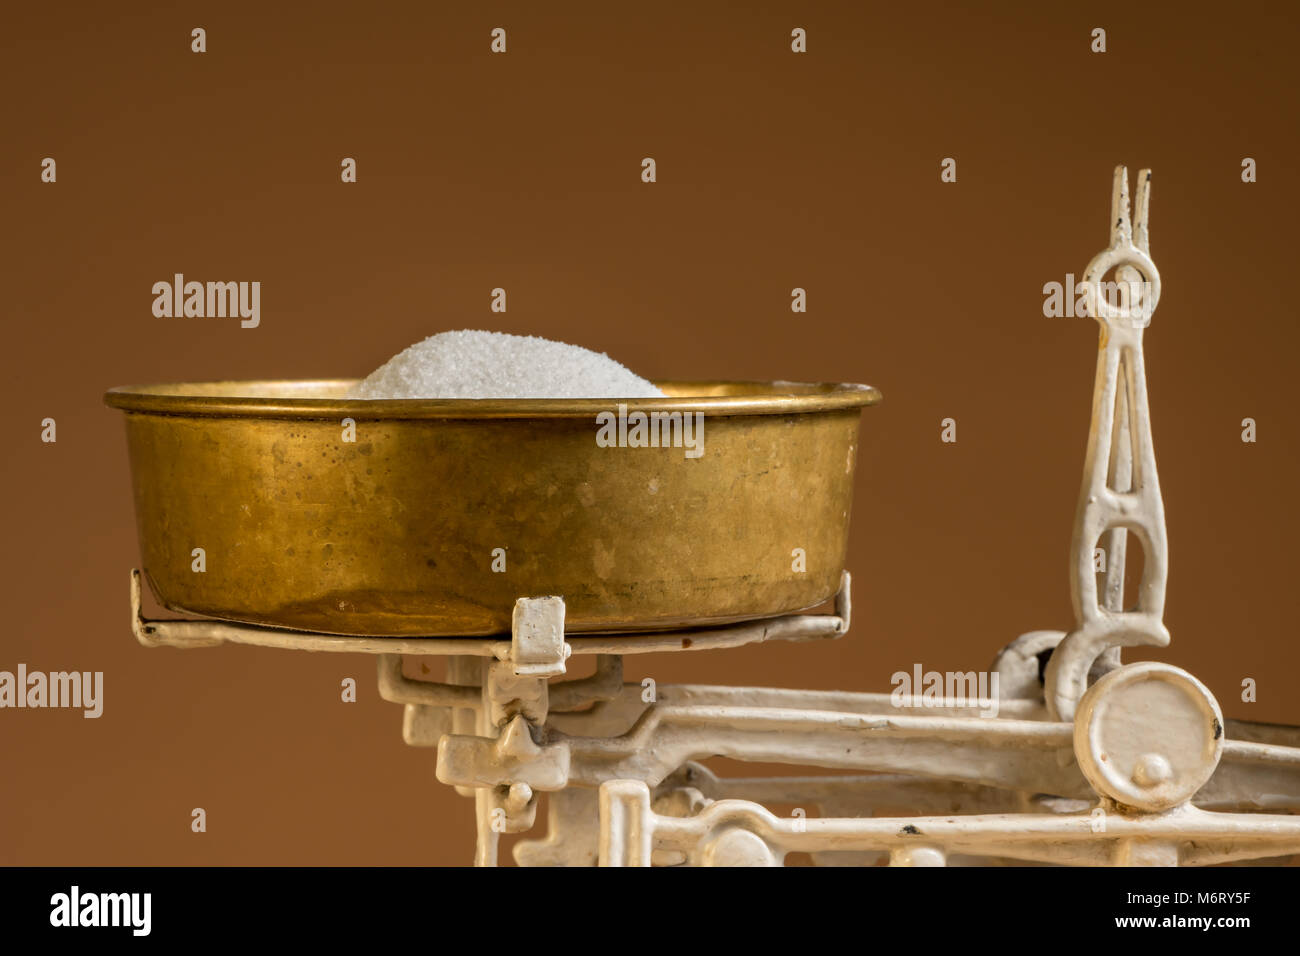 Old white vintage kitchen scale, brass with sugar, brown background - Stock Image